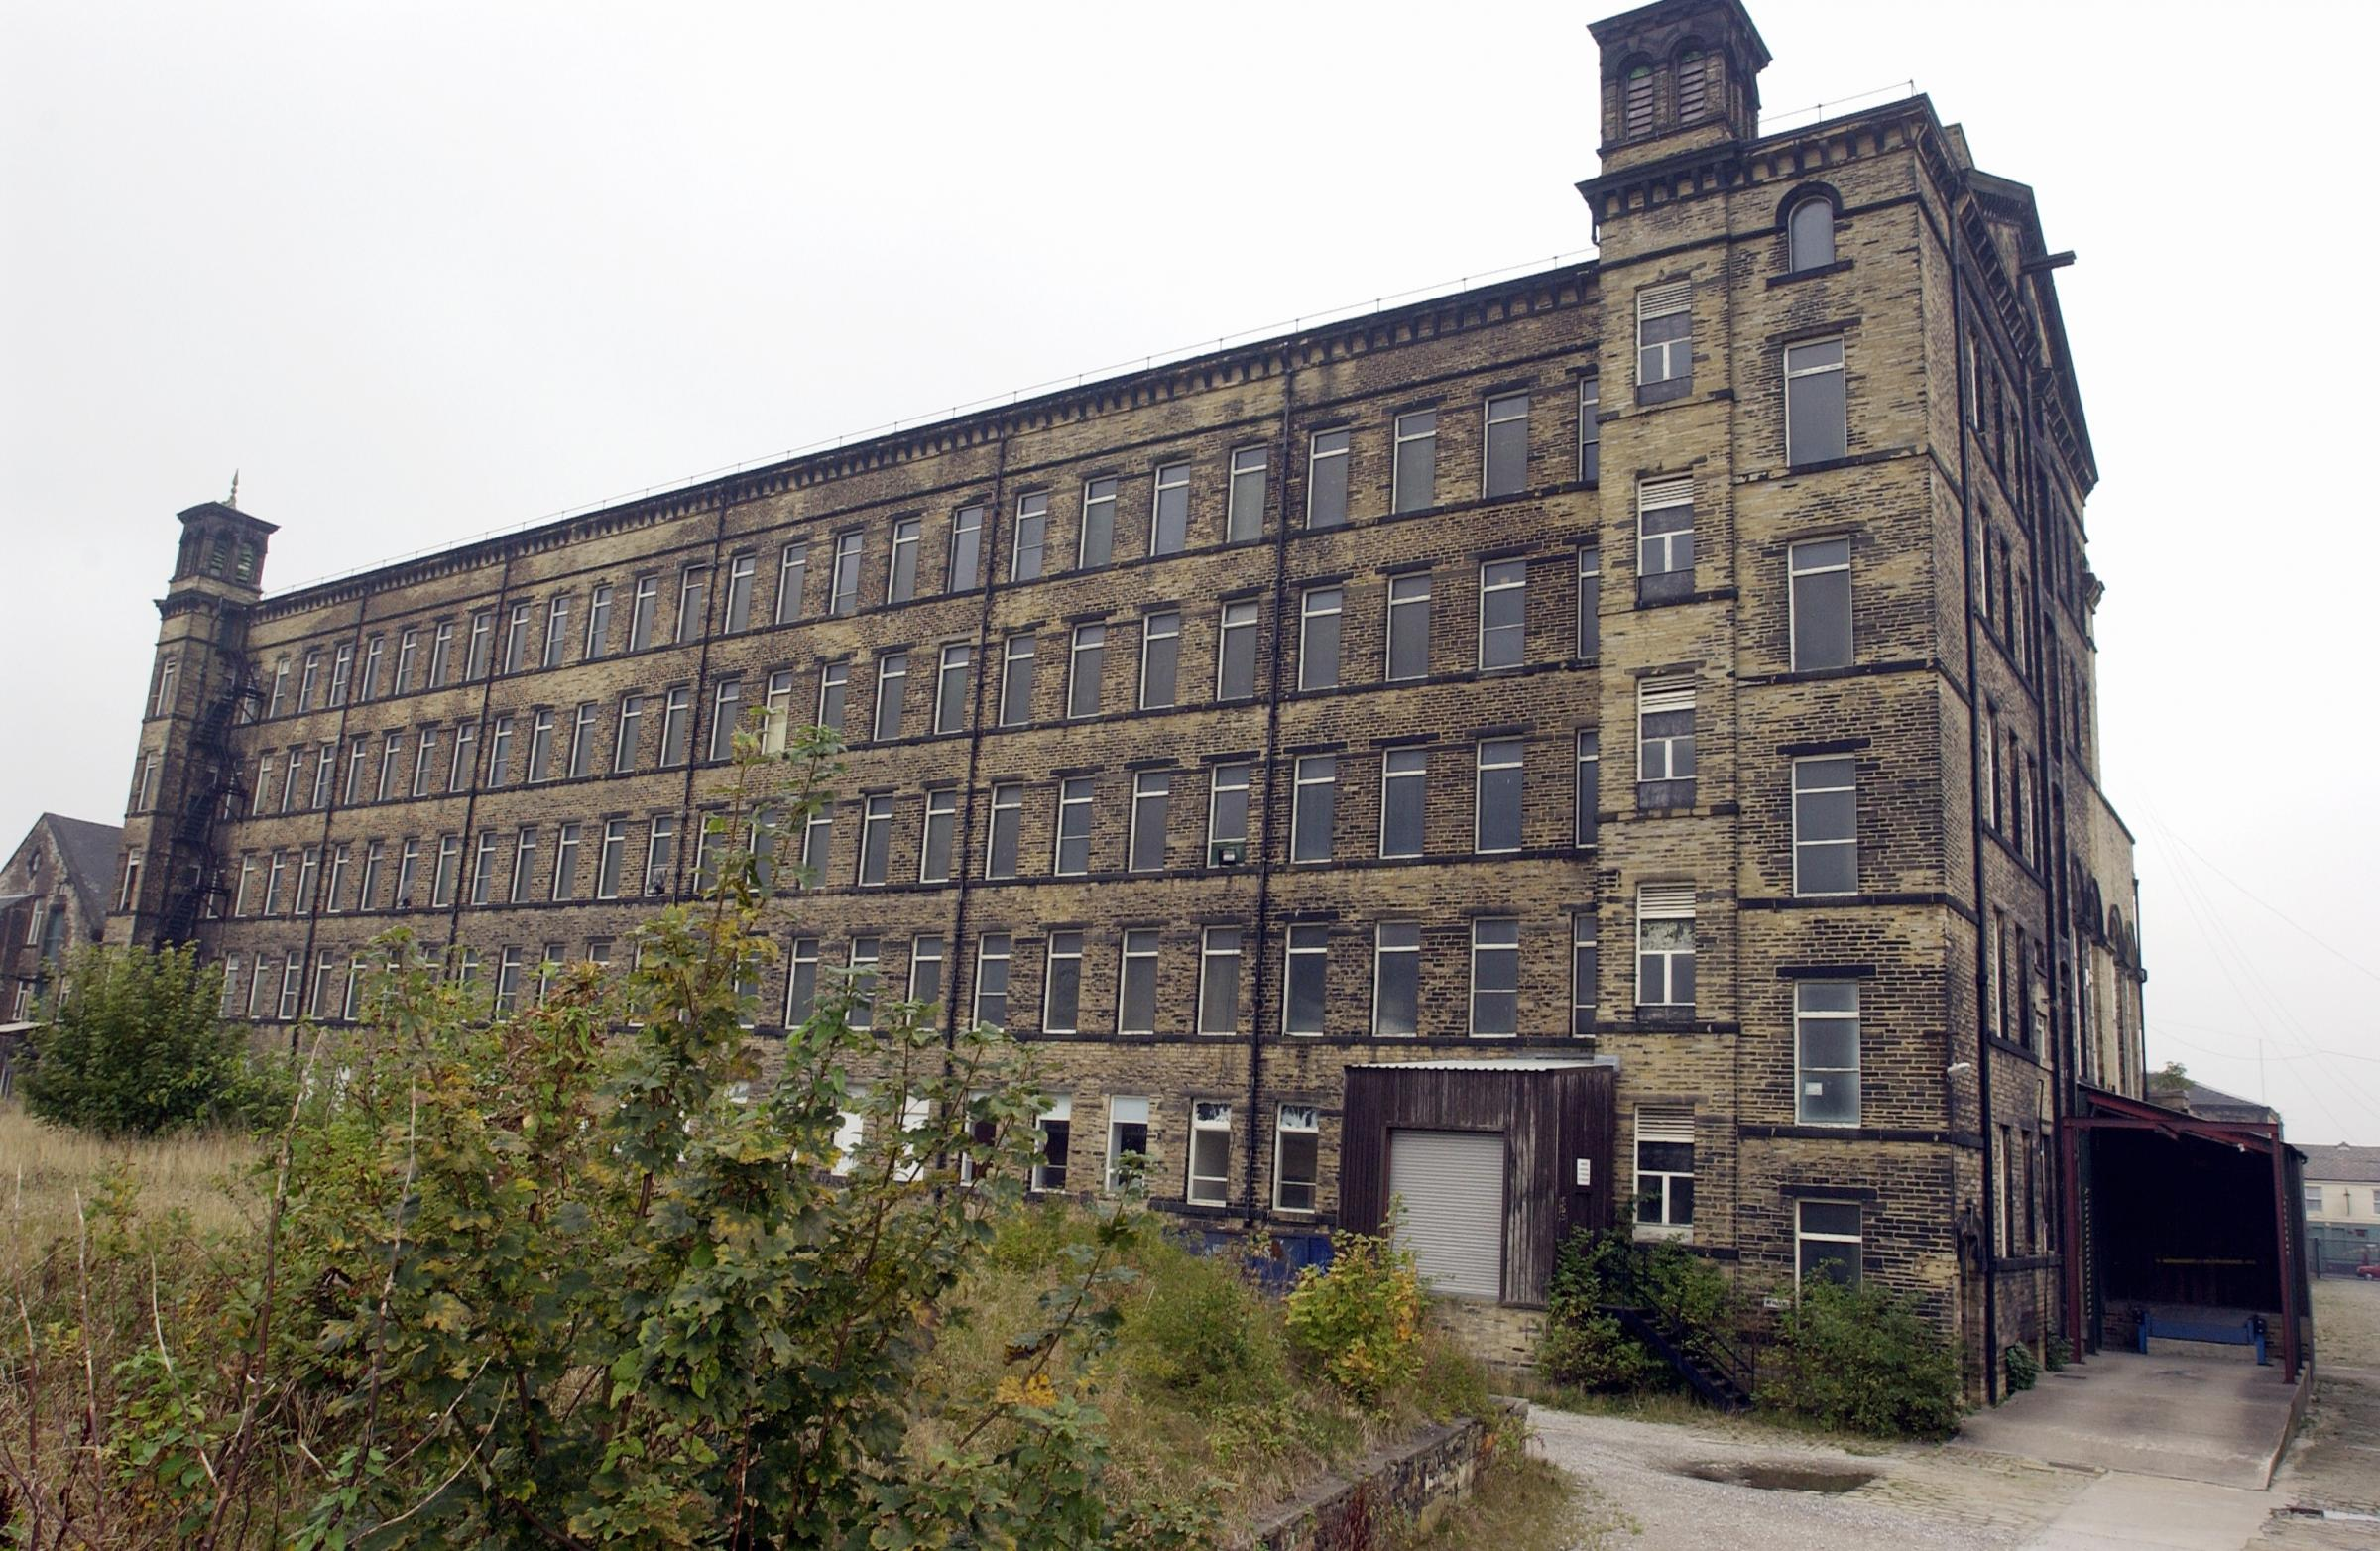 Drummond Mill, which stood on Lumb Lane.